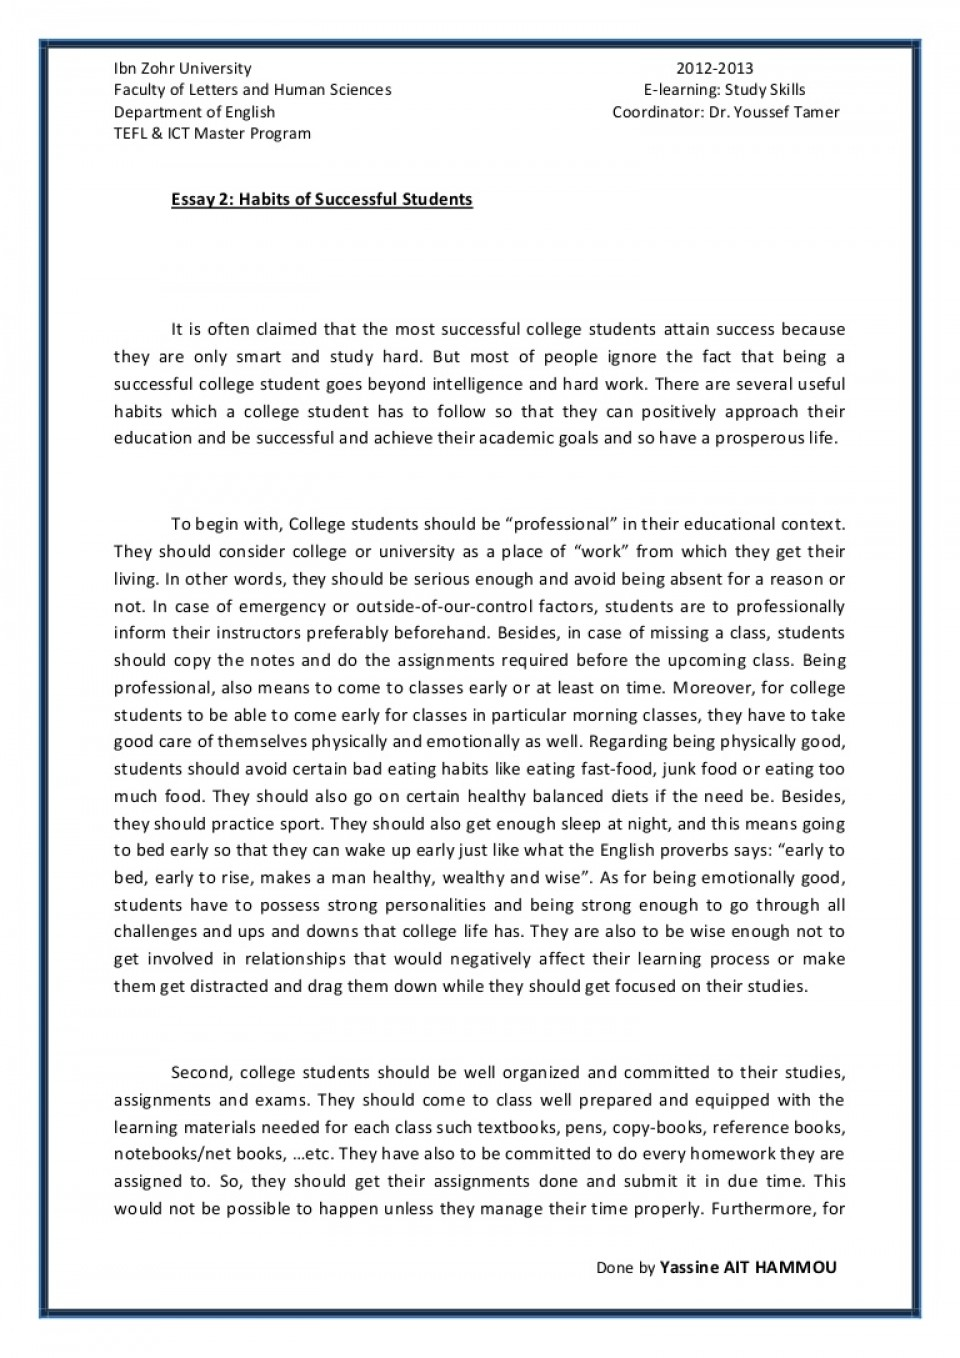 005 Essay About Good Student Essay2 Succesfulcollegestudentshabitsbyyassineaithammou Phpapp01 Thumbnail Rare Qualities Of Students On Ideal In Punjabi Definition 960